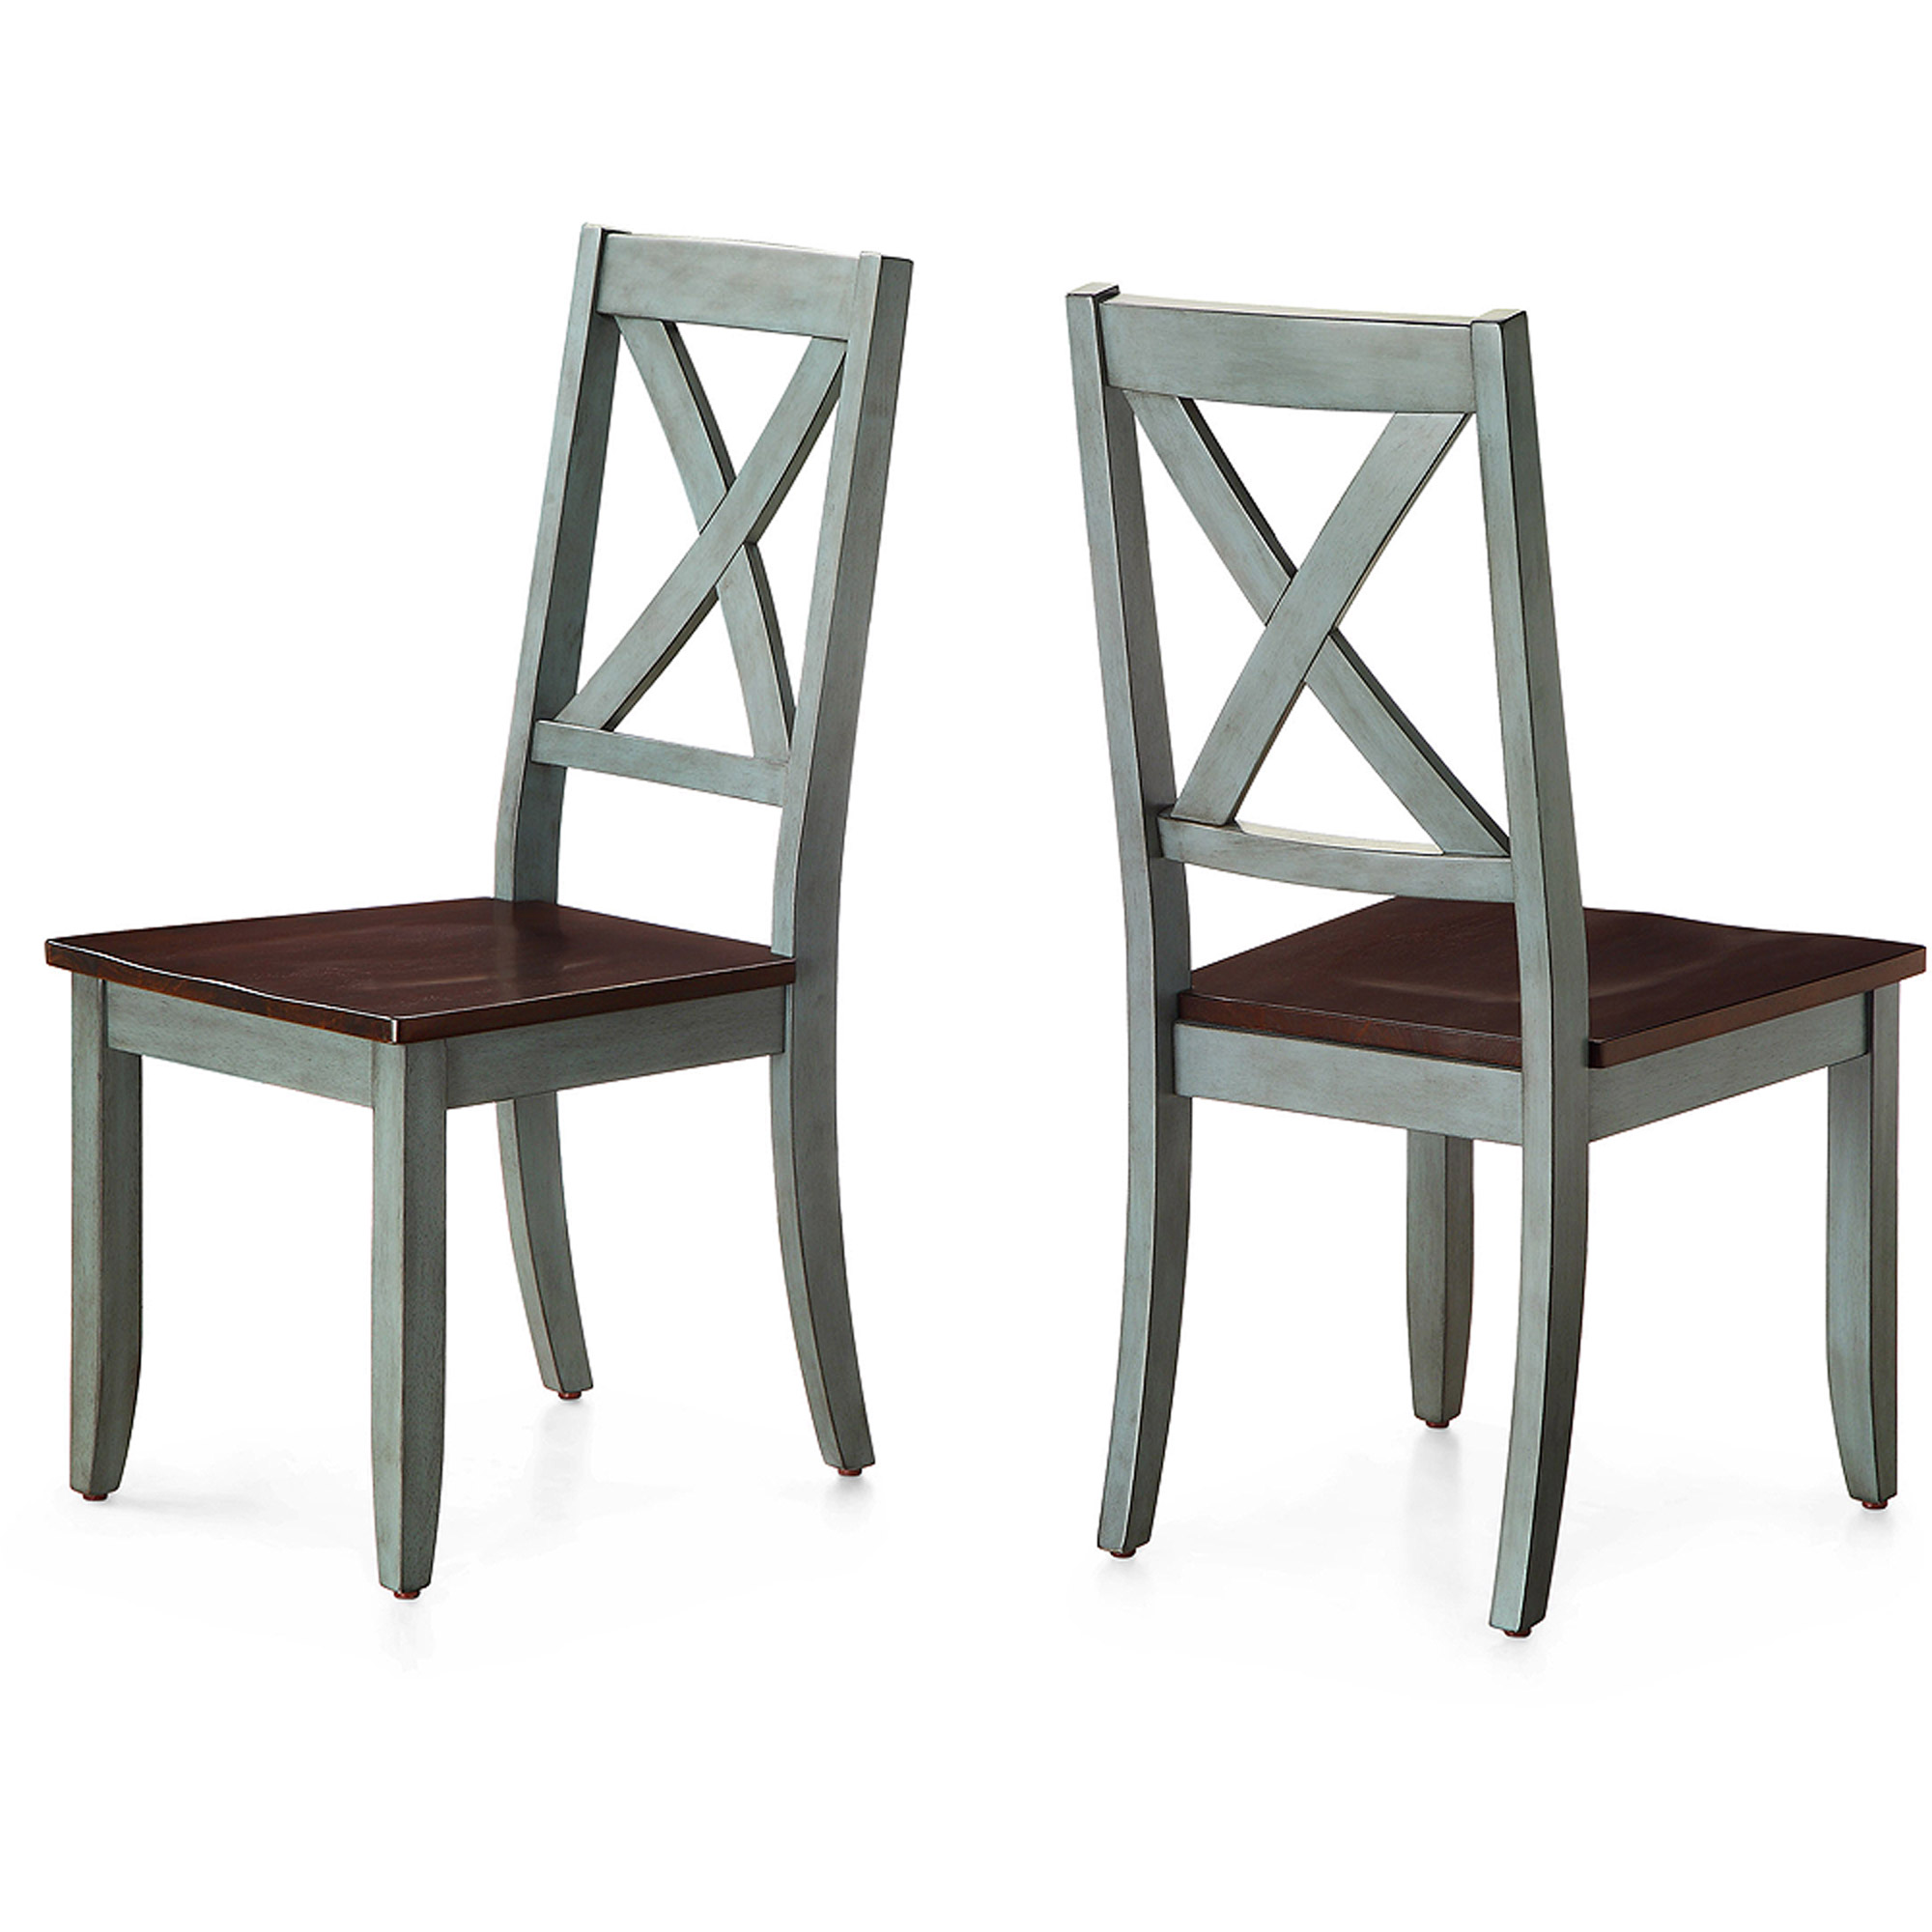 Blue Dining Chairs Details About Better Homes And Gardens Maddox Crossing Dining Chair Blue Set Of 2